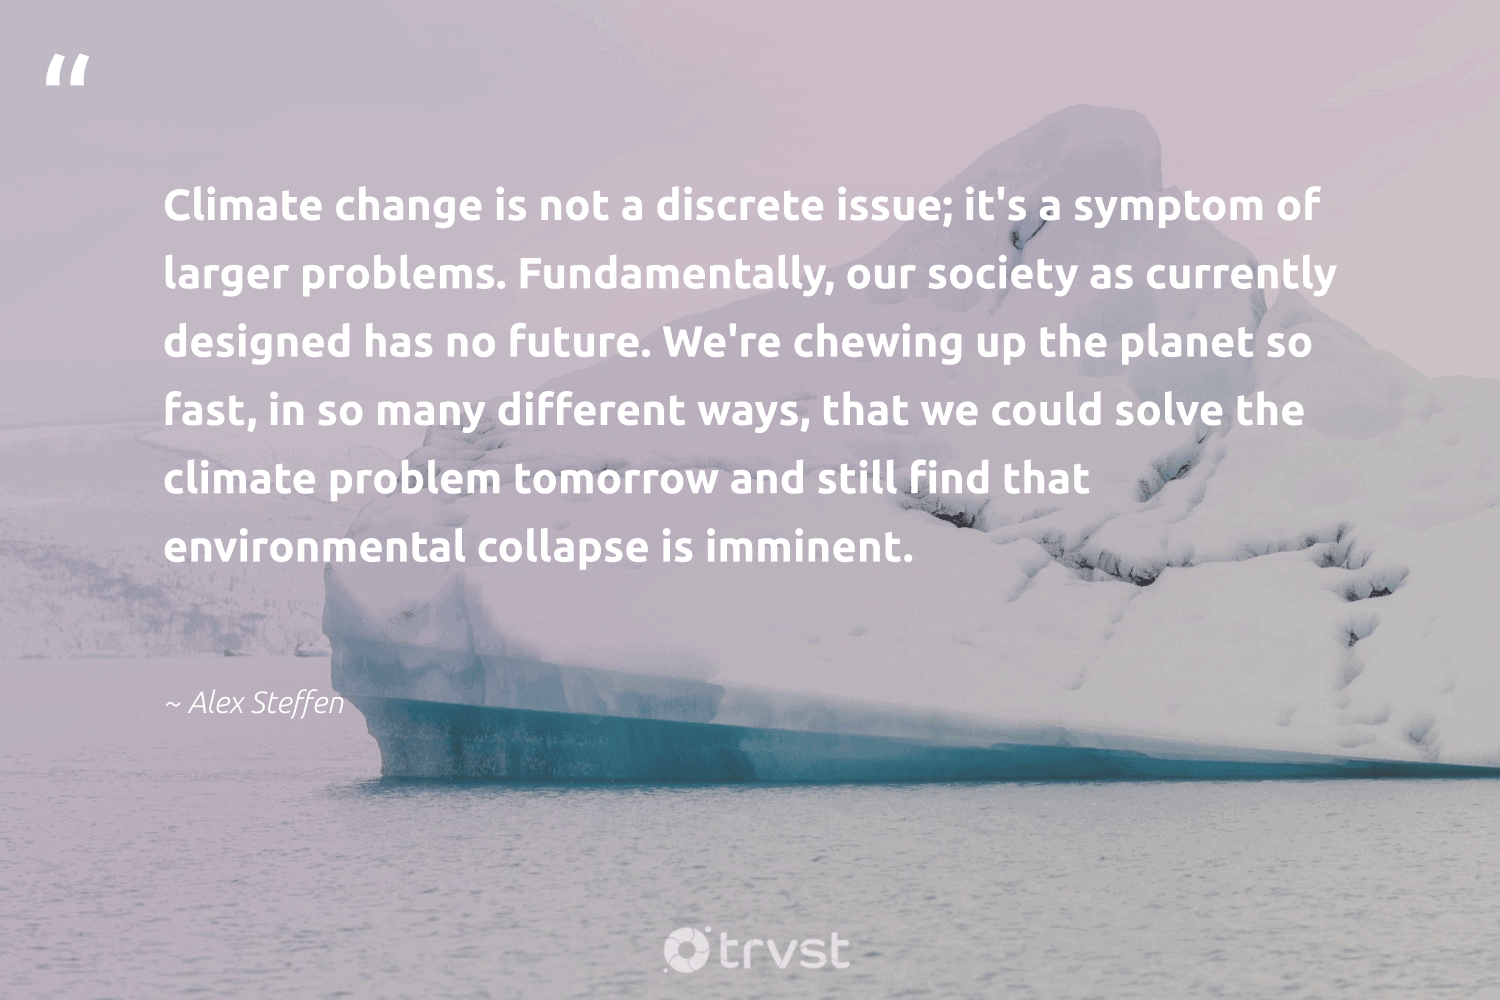 """""""Climate change is not a discrete issue; it's a symptom of larger problems. Fundamentally, our society as currently designed has no future. We're chewing up the planet so fast, in so many different ways, that we could solve the climate problem tomorrow and still find that environmental collapse is imminent.""""  - Alex Steffen #trvst #quotes #climatechange #environmental #planet #climate #society #carbonemissions #nature #climatechangeisreal #globalwarming #thinkgreen"""